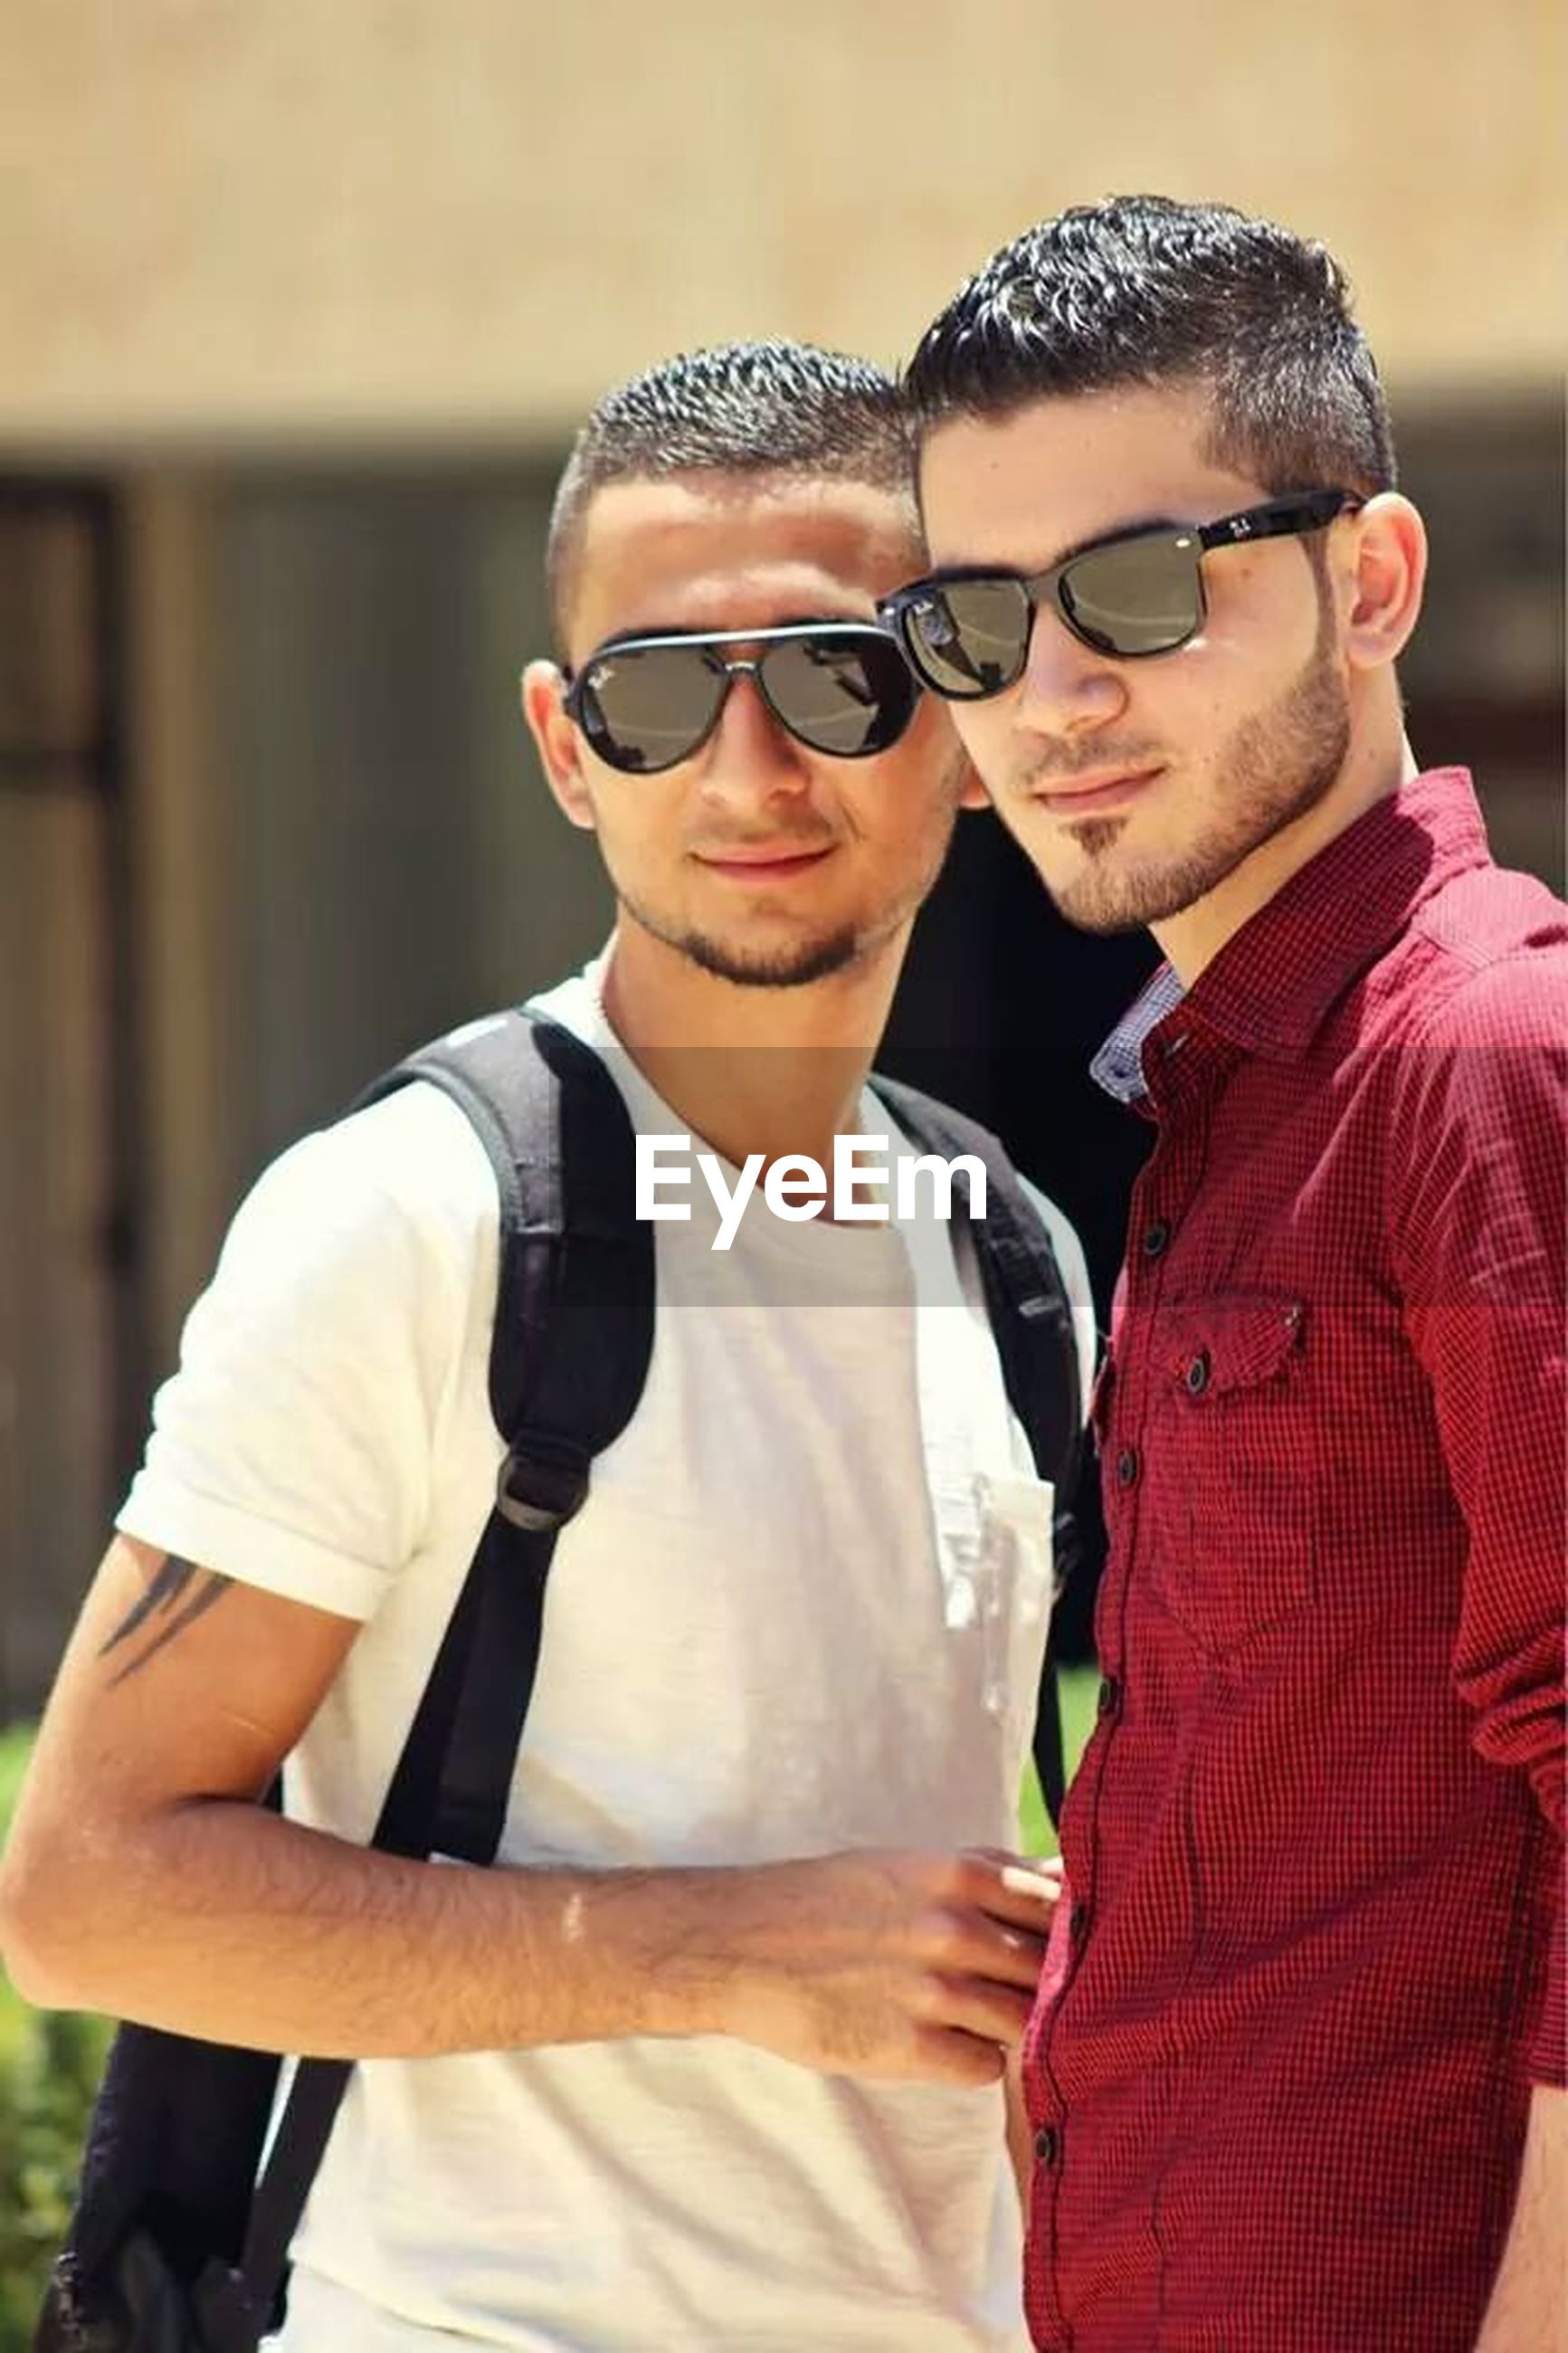 lifestyles, looking at camera, portrait, front view, person, young men, young adult, sunglasses, leisure activity, casual clothing, smiling, focus on foreground, eyeglasses, mid adult men, holding, waist up, happiness, mid adult